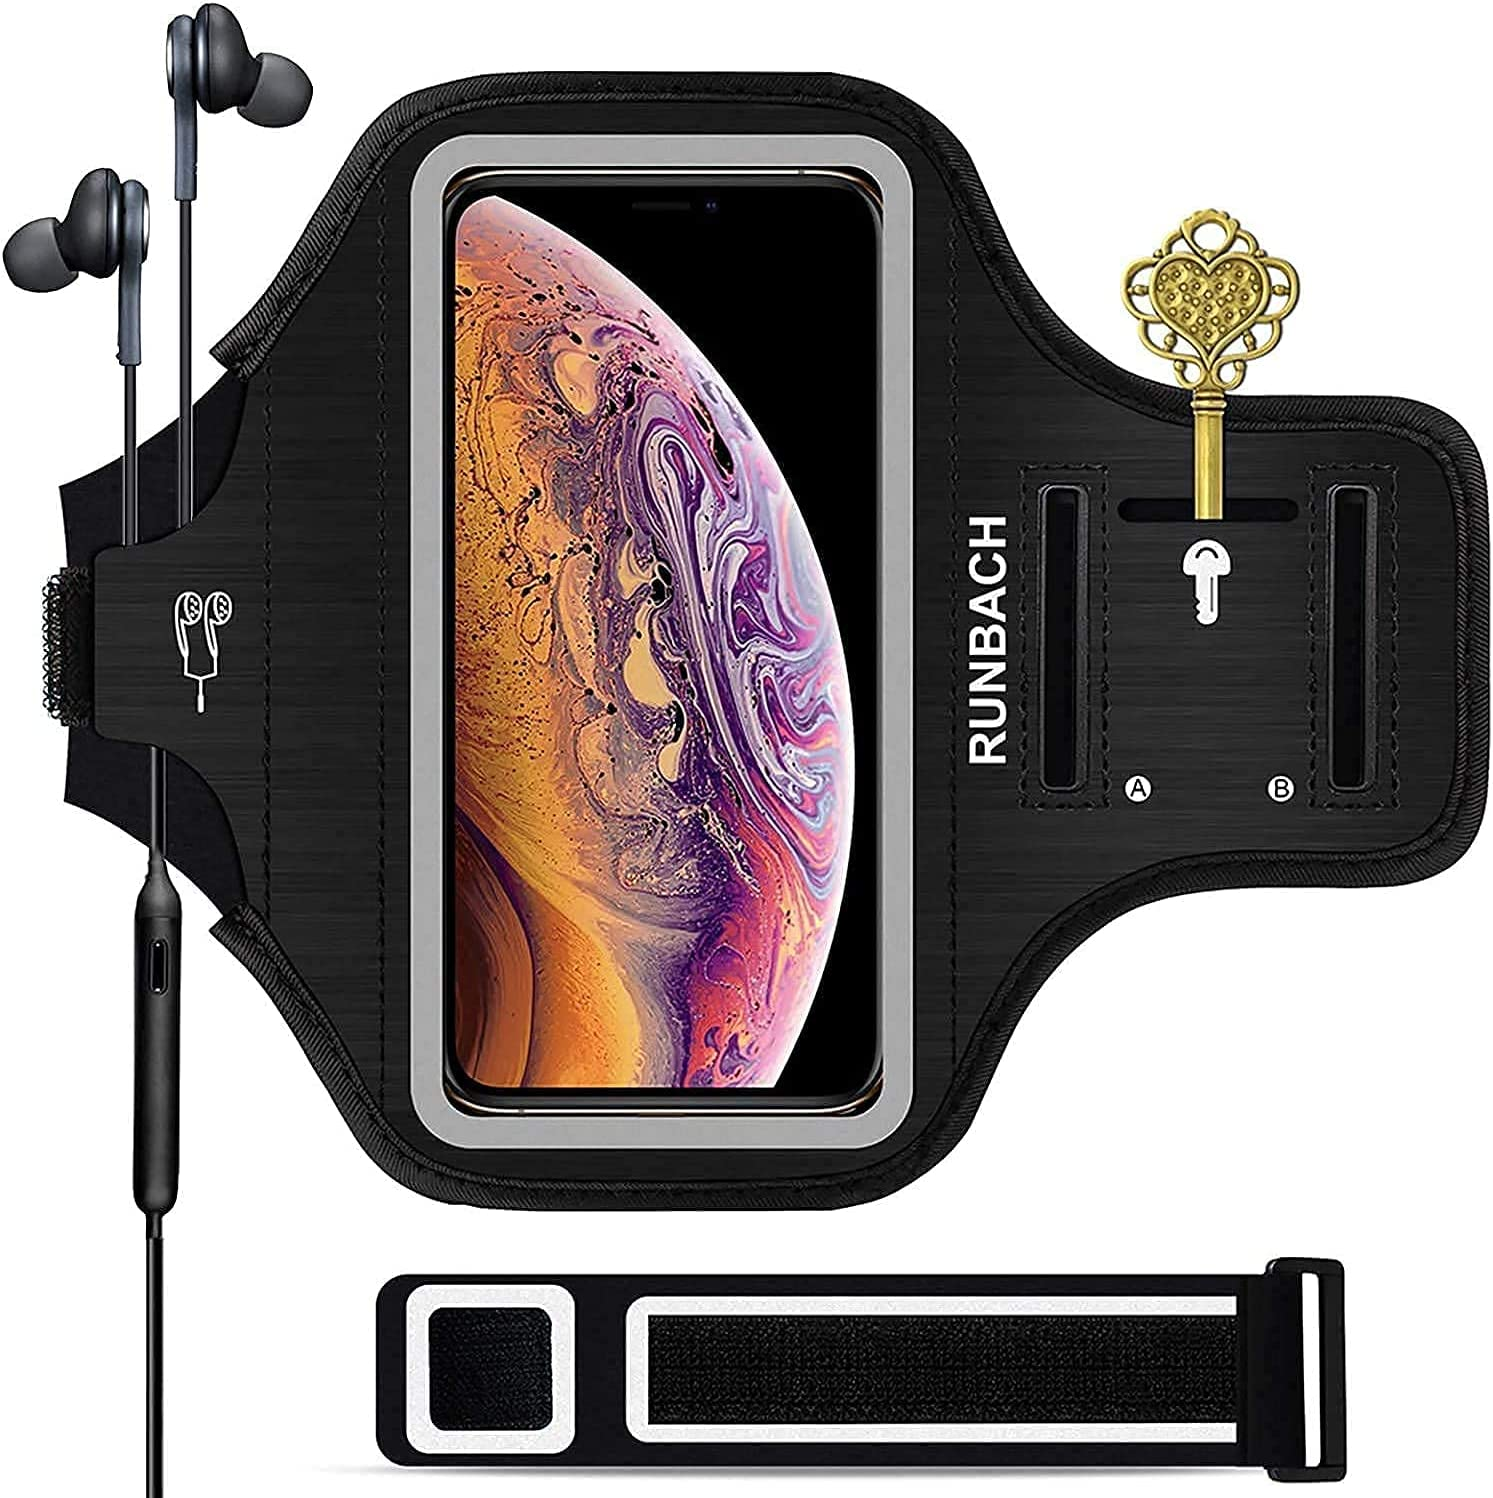 iPhone 11 Pro Max/12 Pro Max/iPhone Xs Max Armband,RUNBACH Sweatproof Running Exercise Bag with Fingerprint Touch and Card Slot Compatible with iPhone 12 Pro Max,11 Pro Max,XS Max (Black)